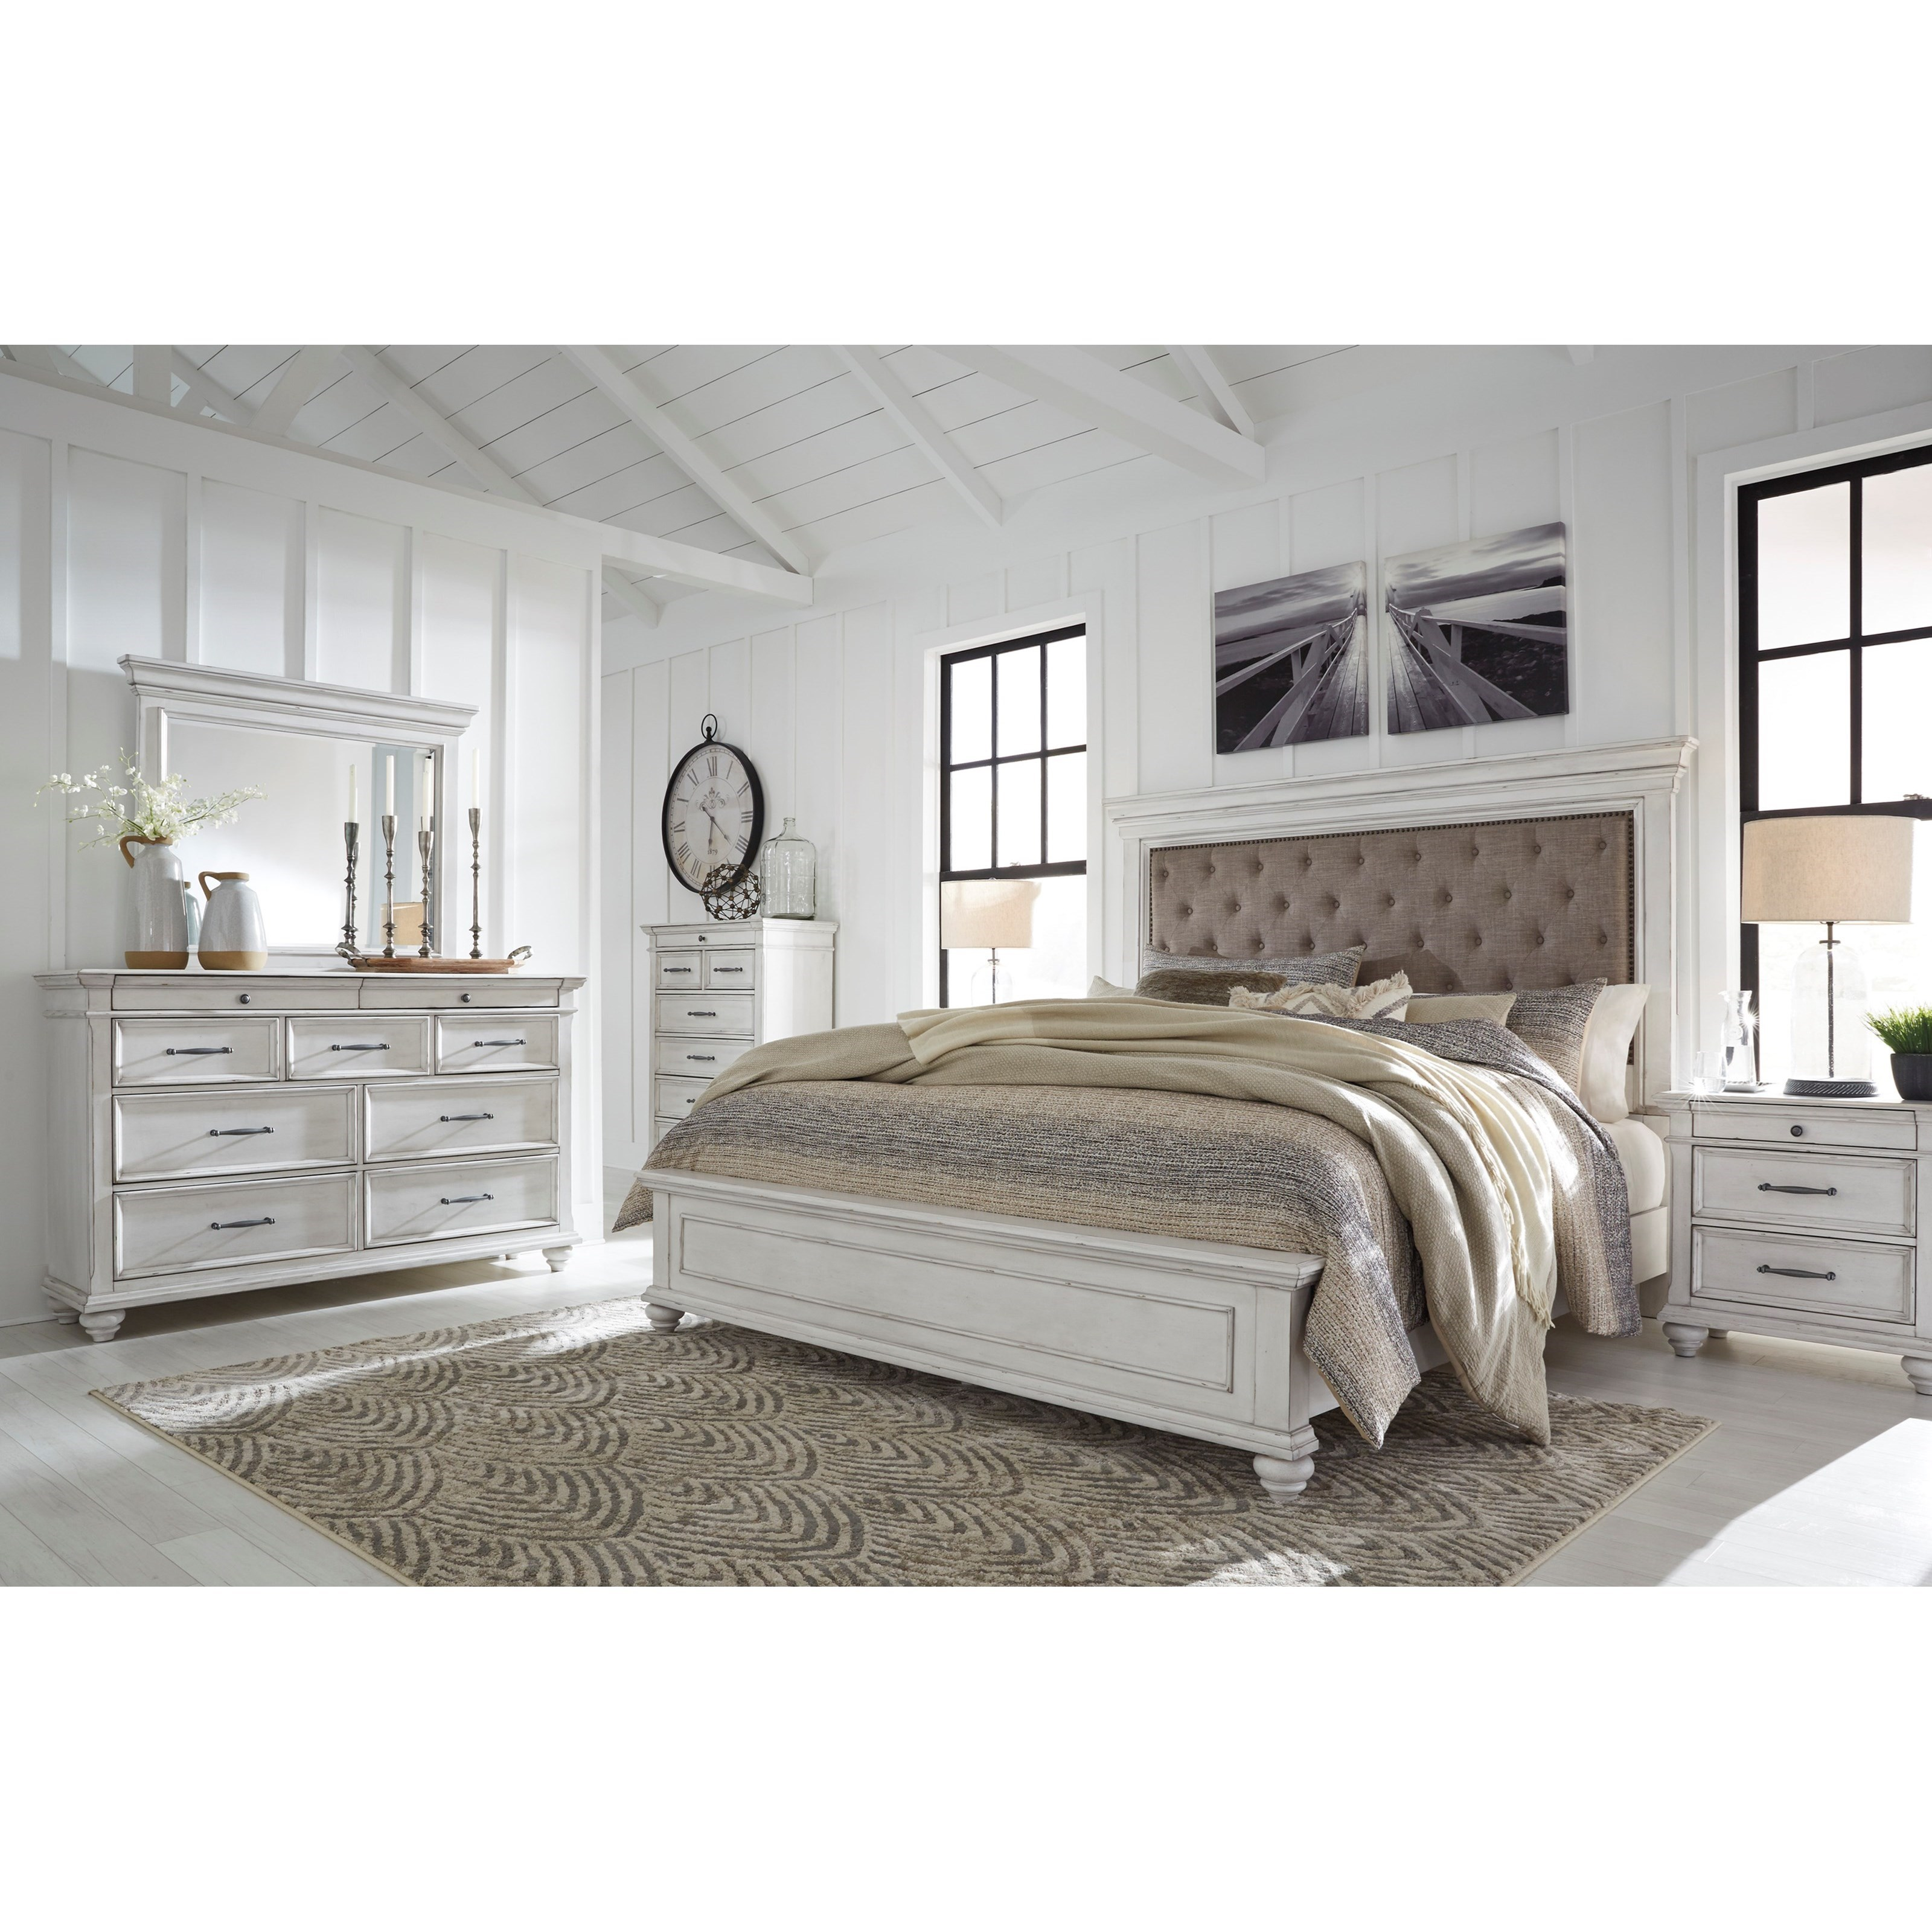 Kanwyn California King Bedroom Group by Benchcraft at Northeast Factory Direct